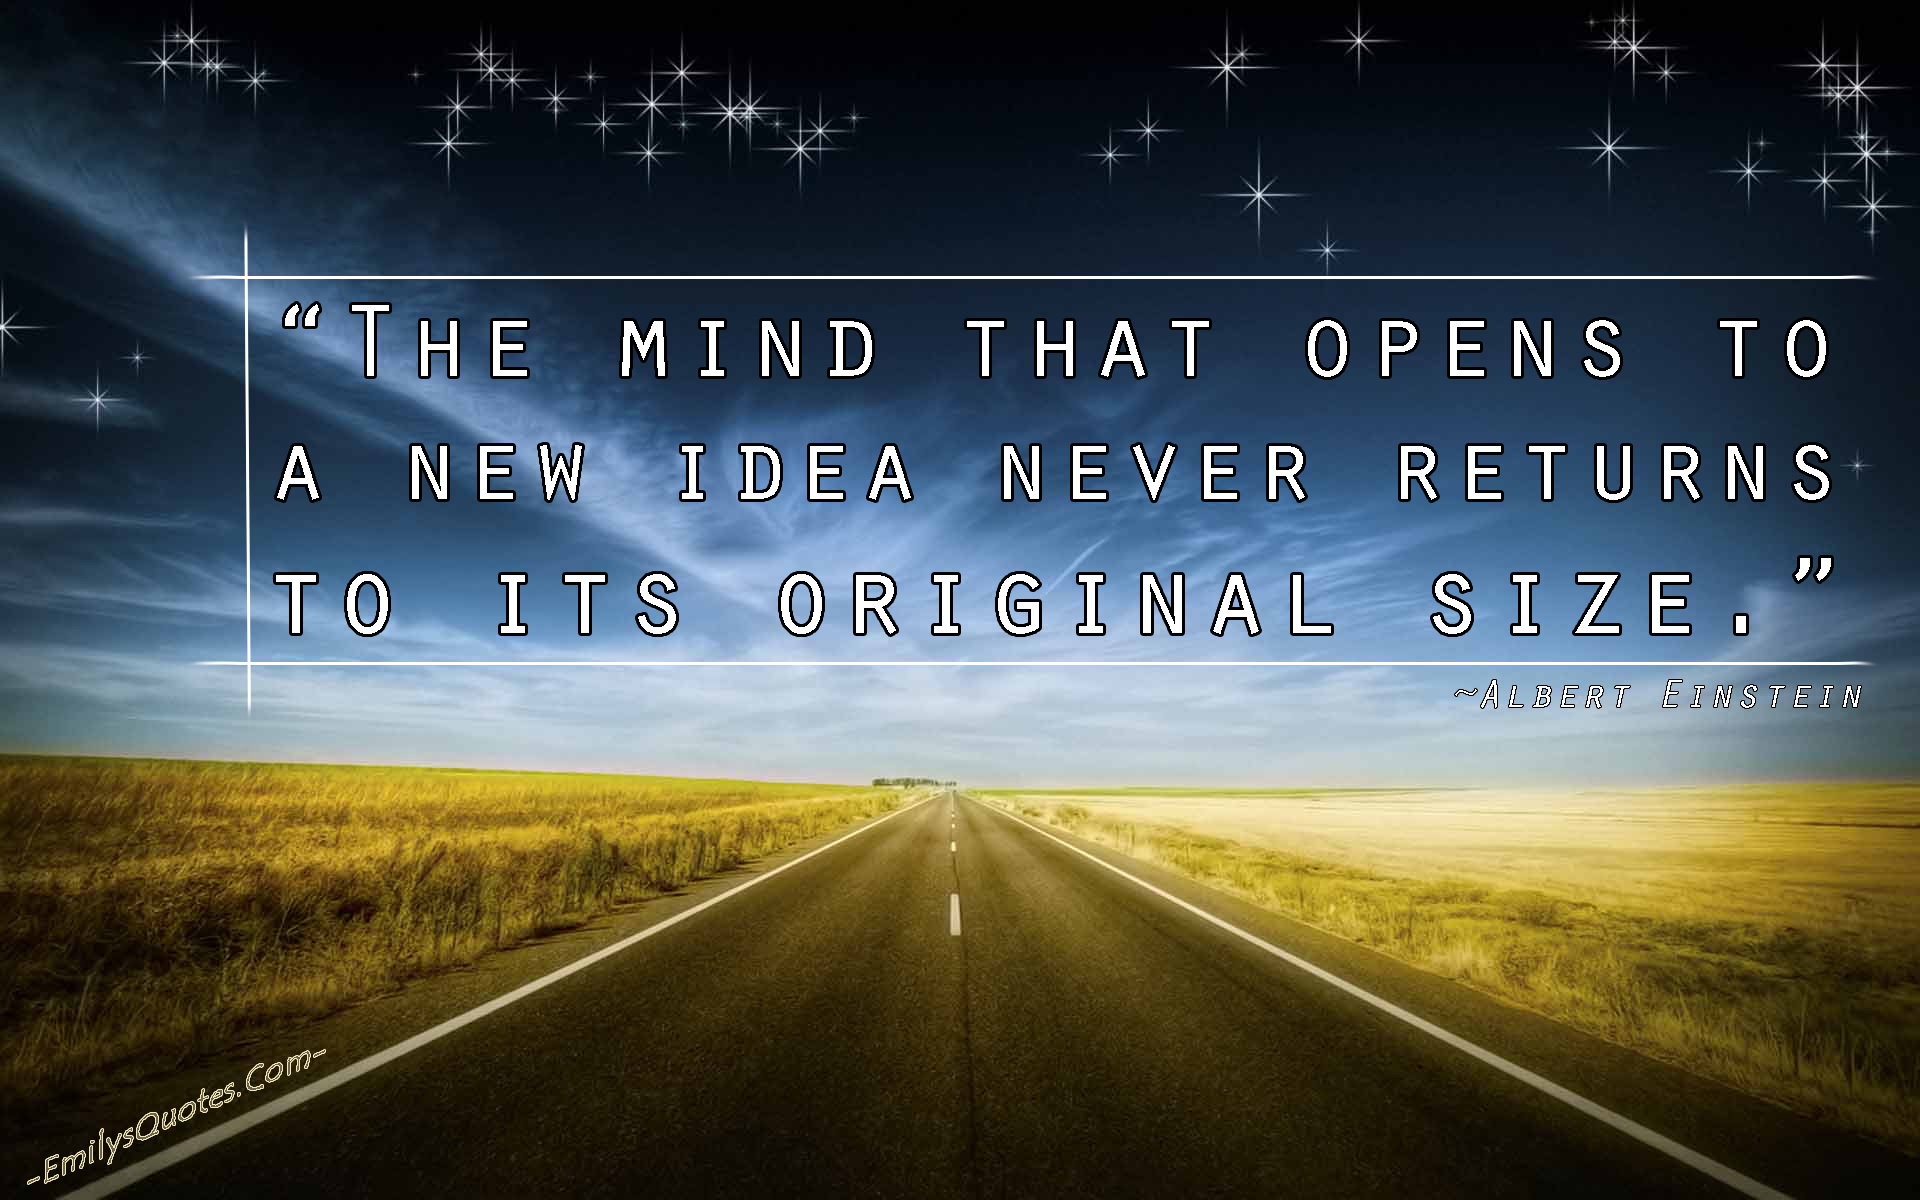 The mind that opens to a new idea never returns to its